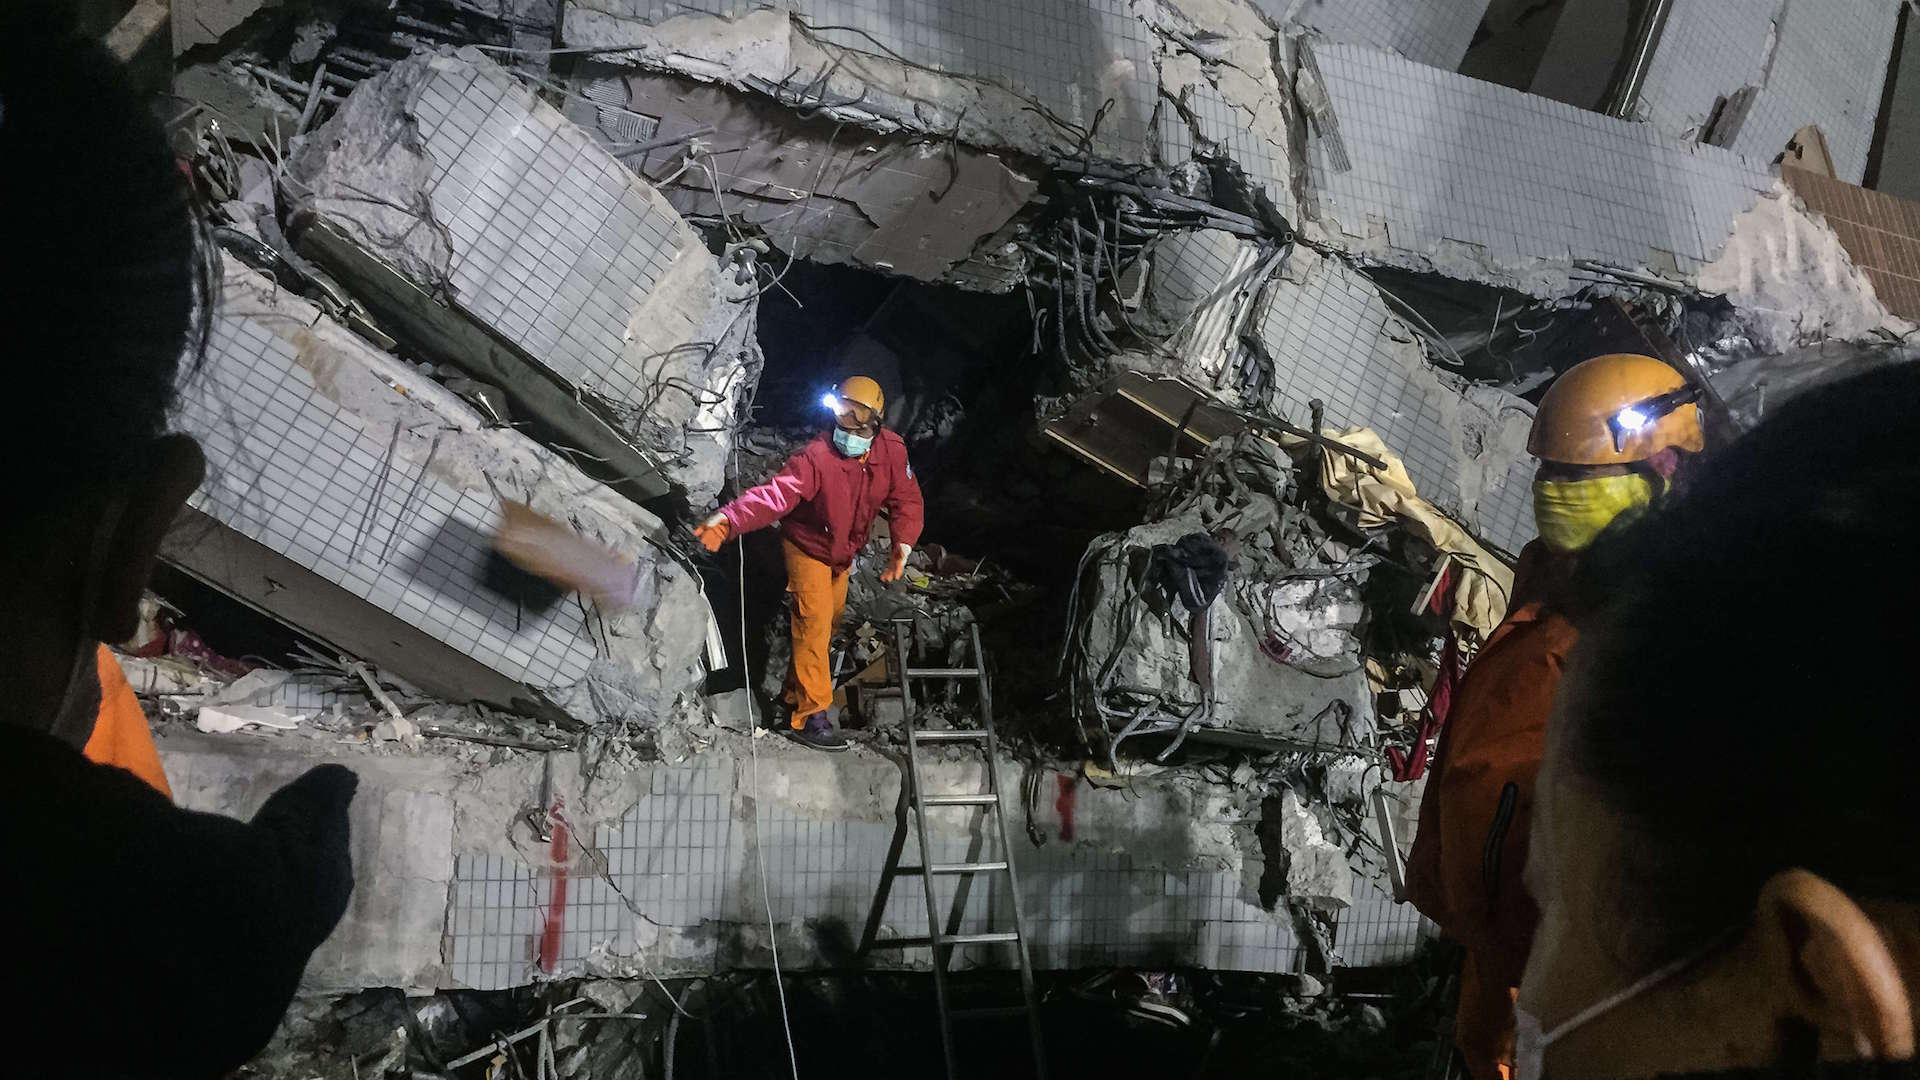 With dozens dead, Taiwan has questions and an arrest warrant for developer of building that fell in quake